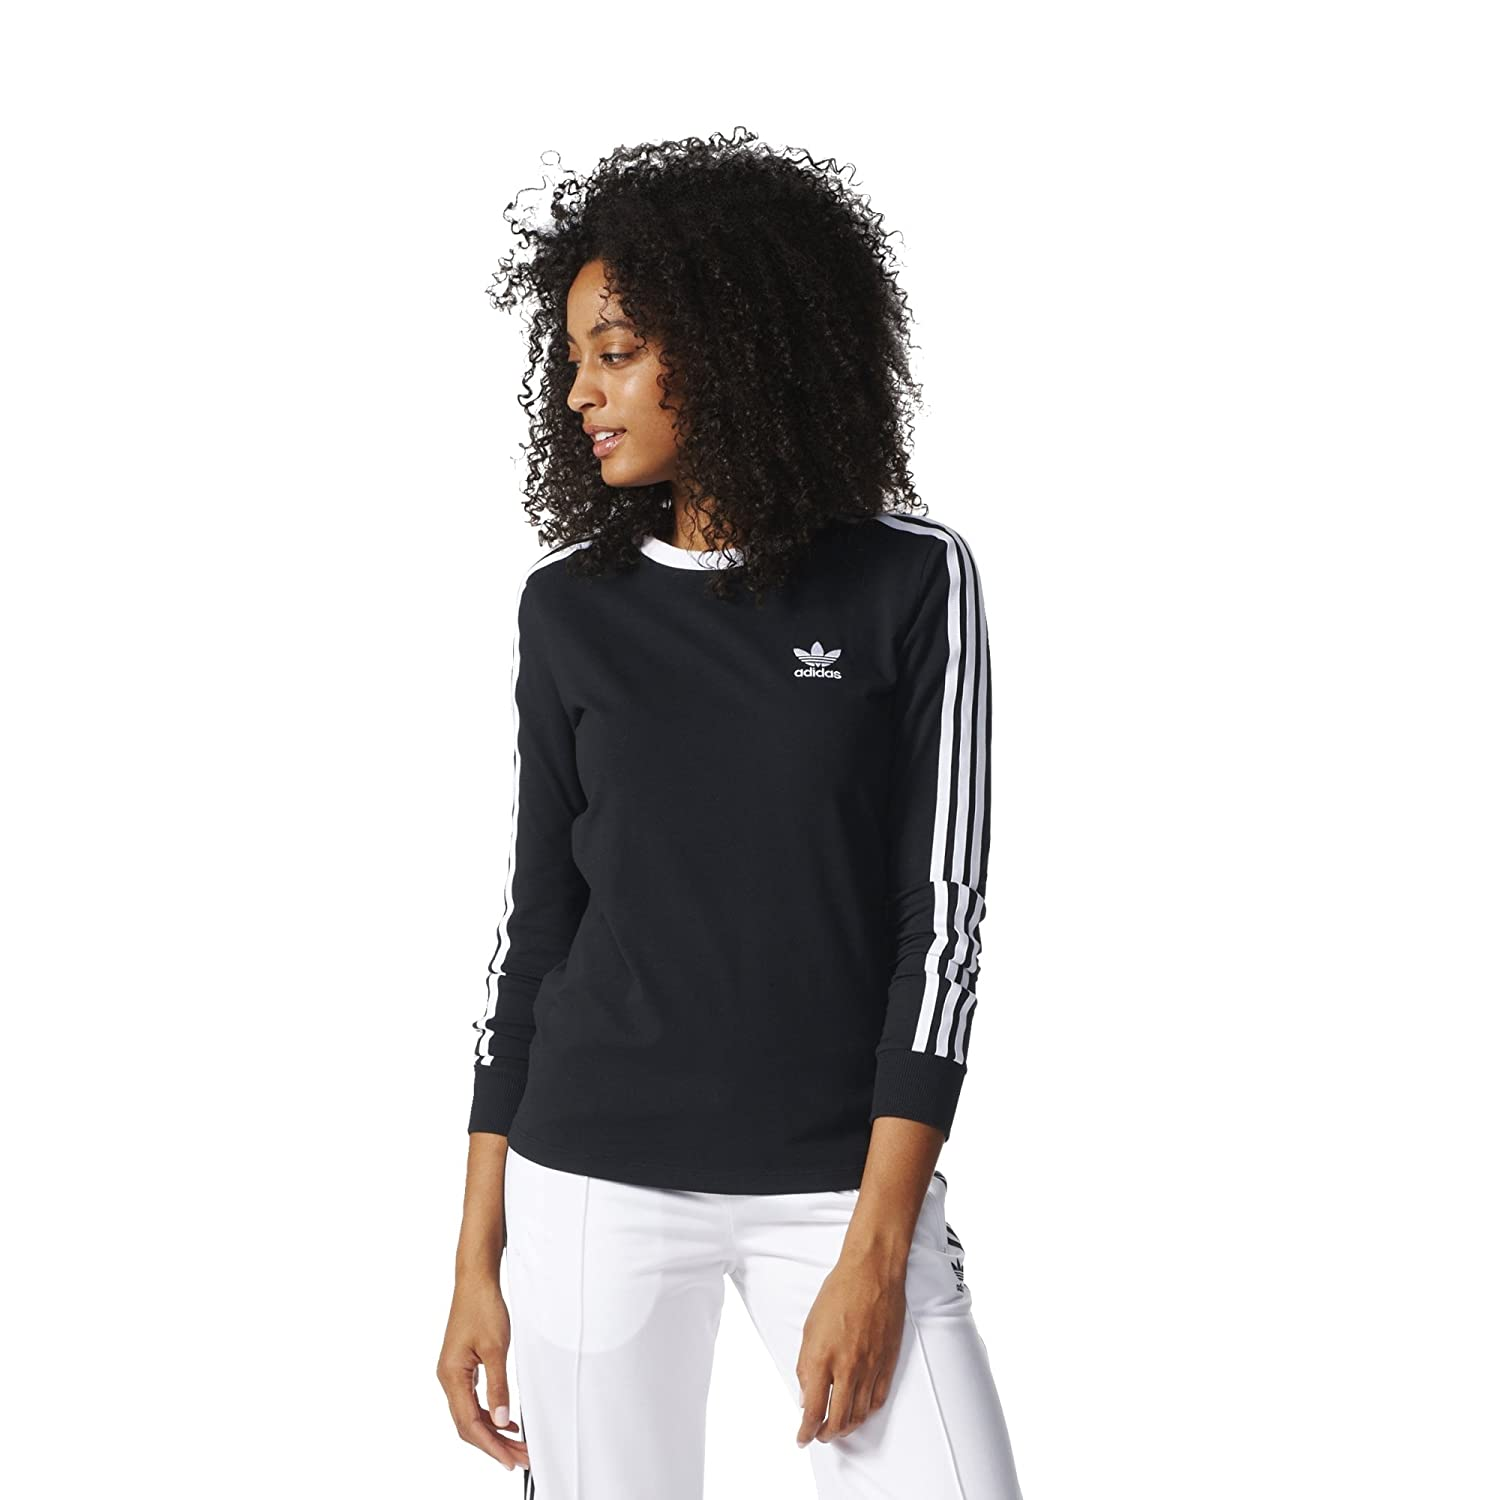 c216813dde436e adidas Originals Women s Originals 3 Stripes Long sleeve Tee at Amazon  Women s Clothing store